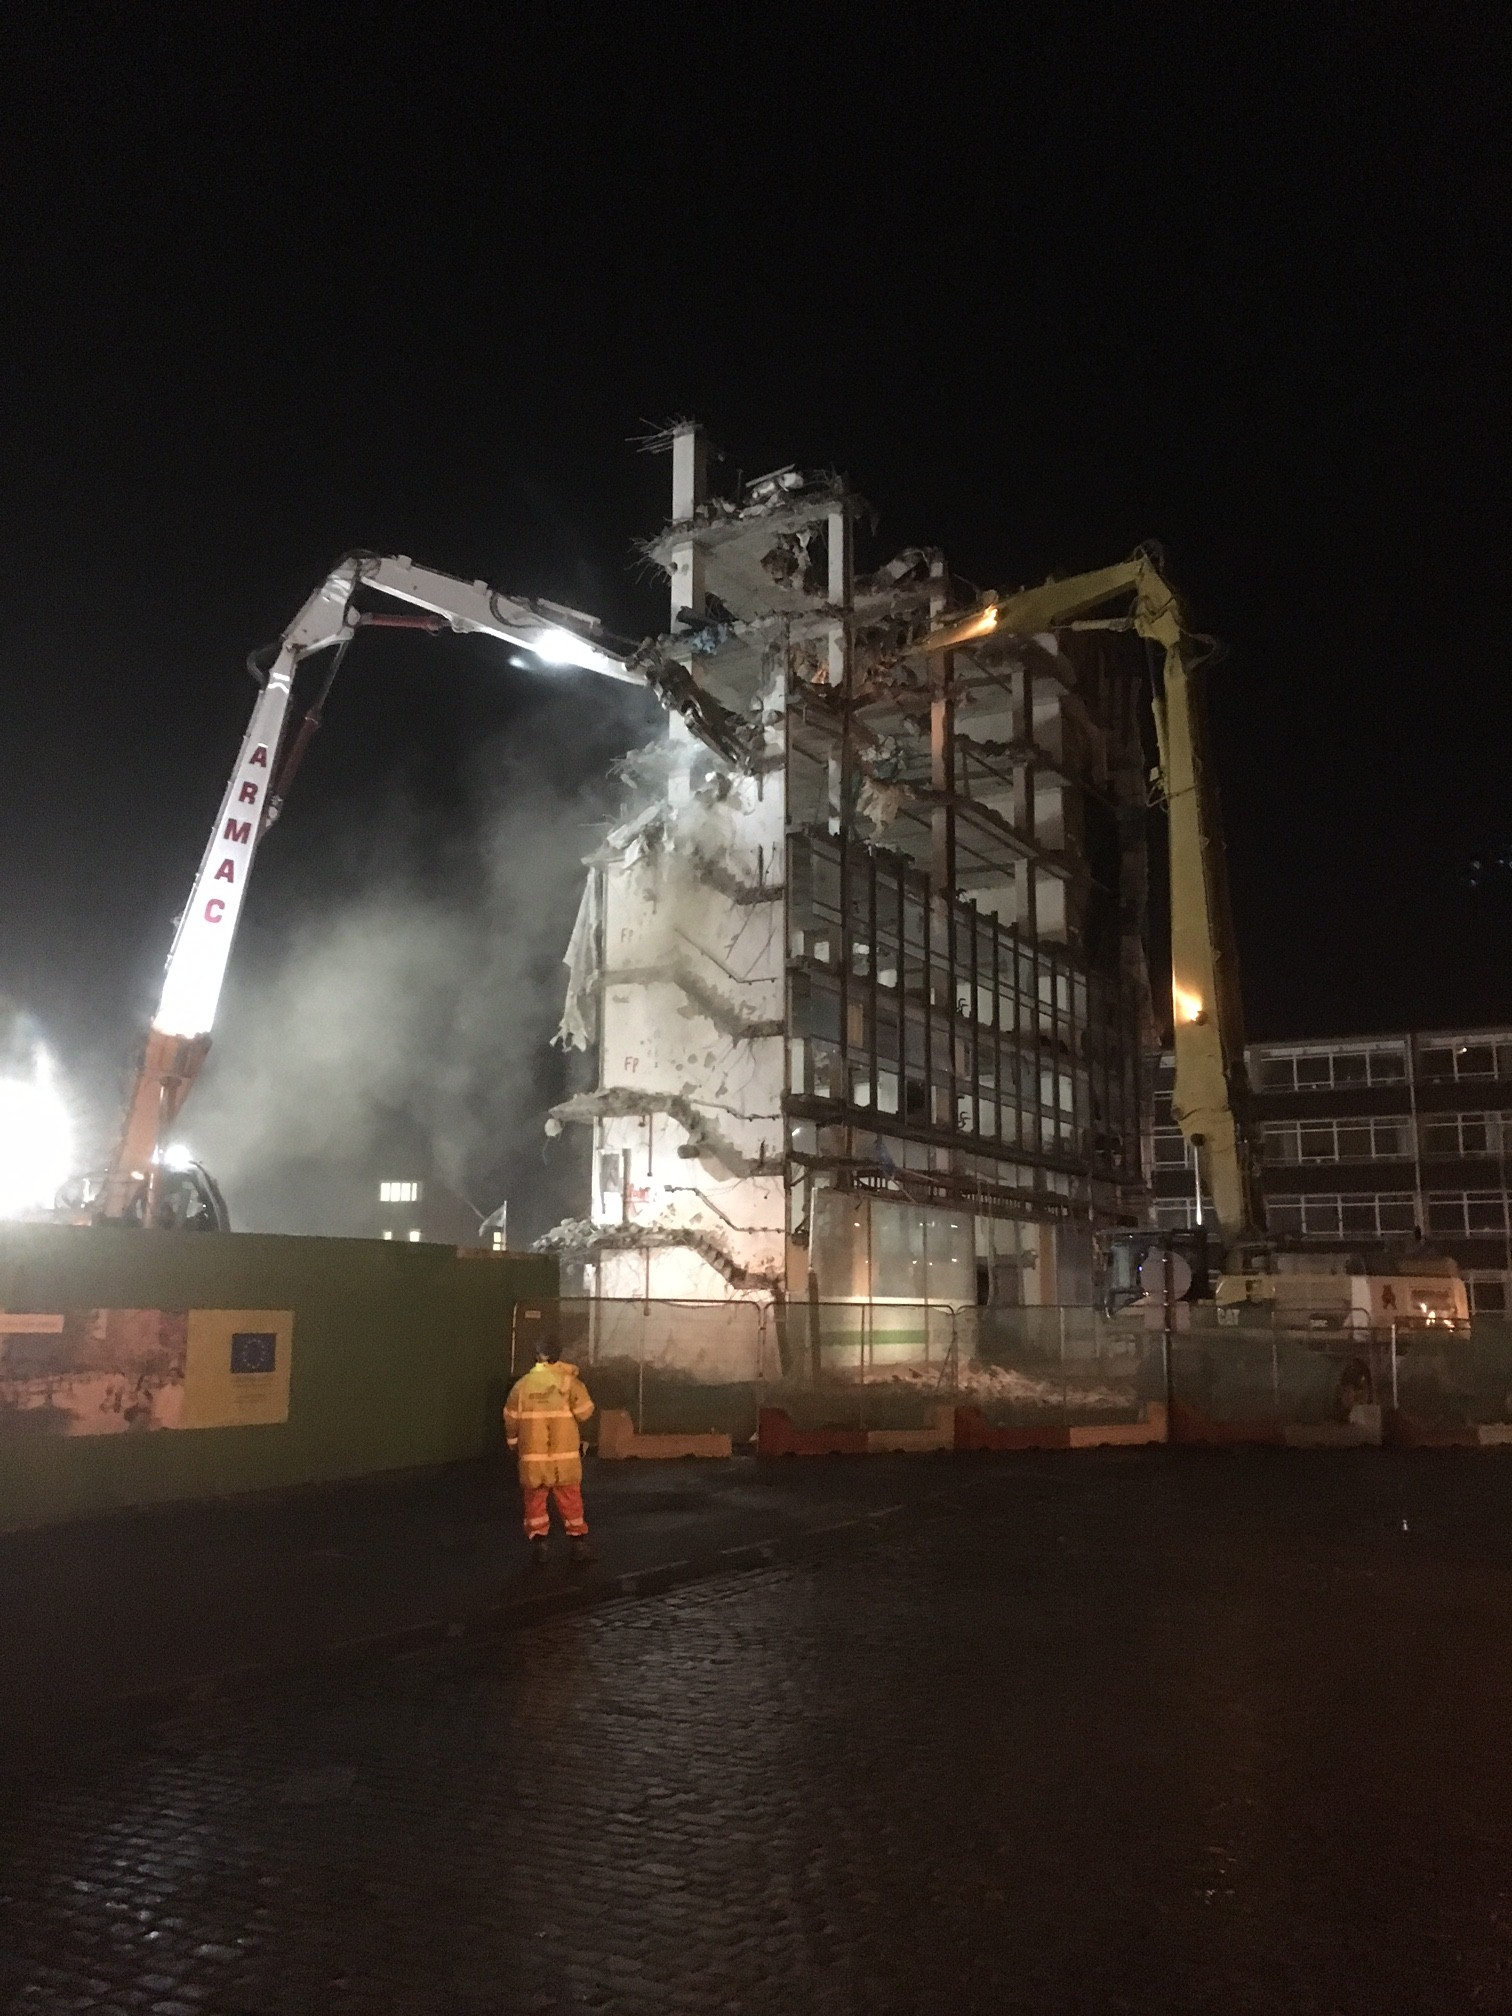 Friarsgate Demolition, Coventry